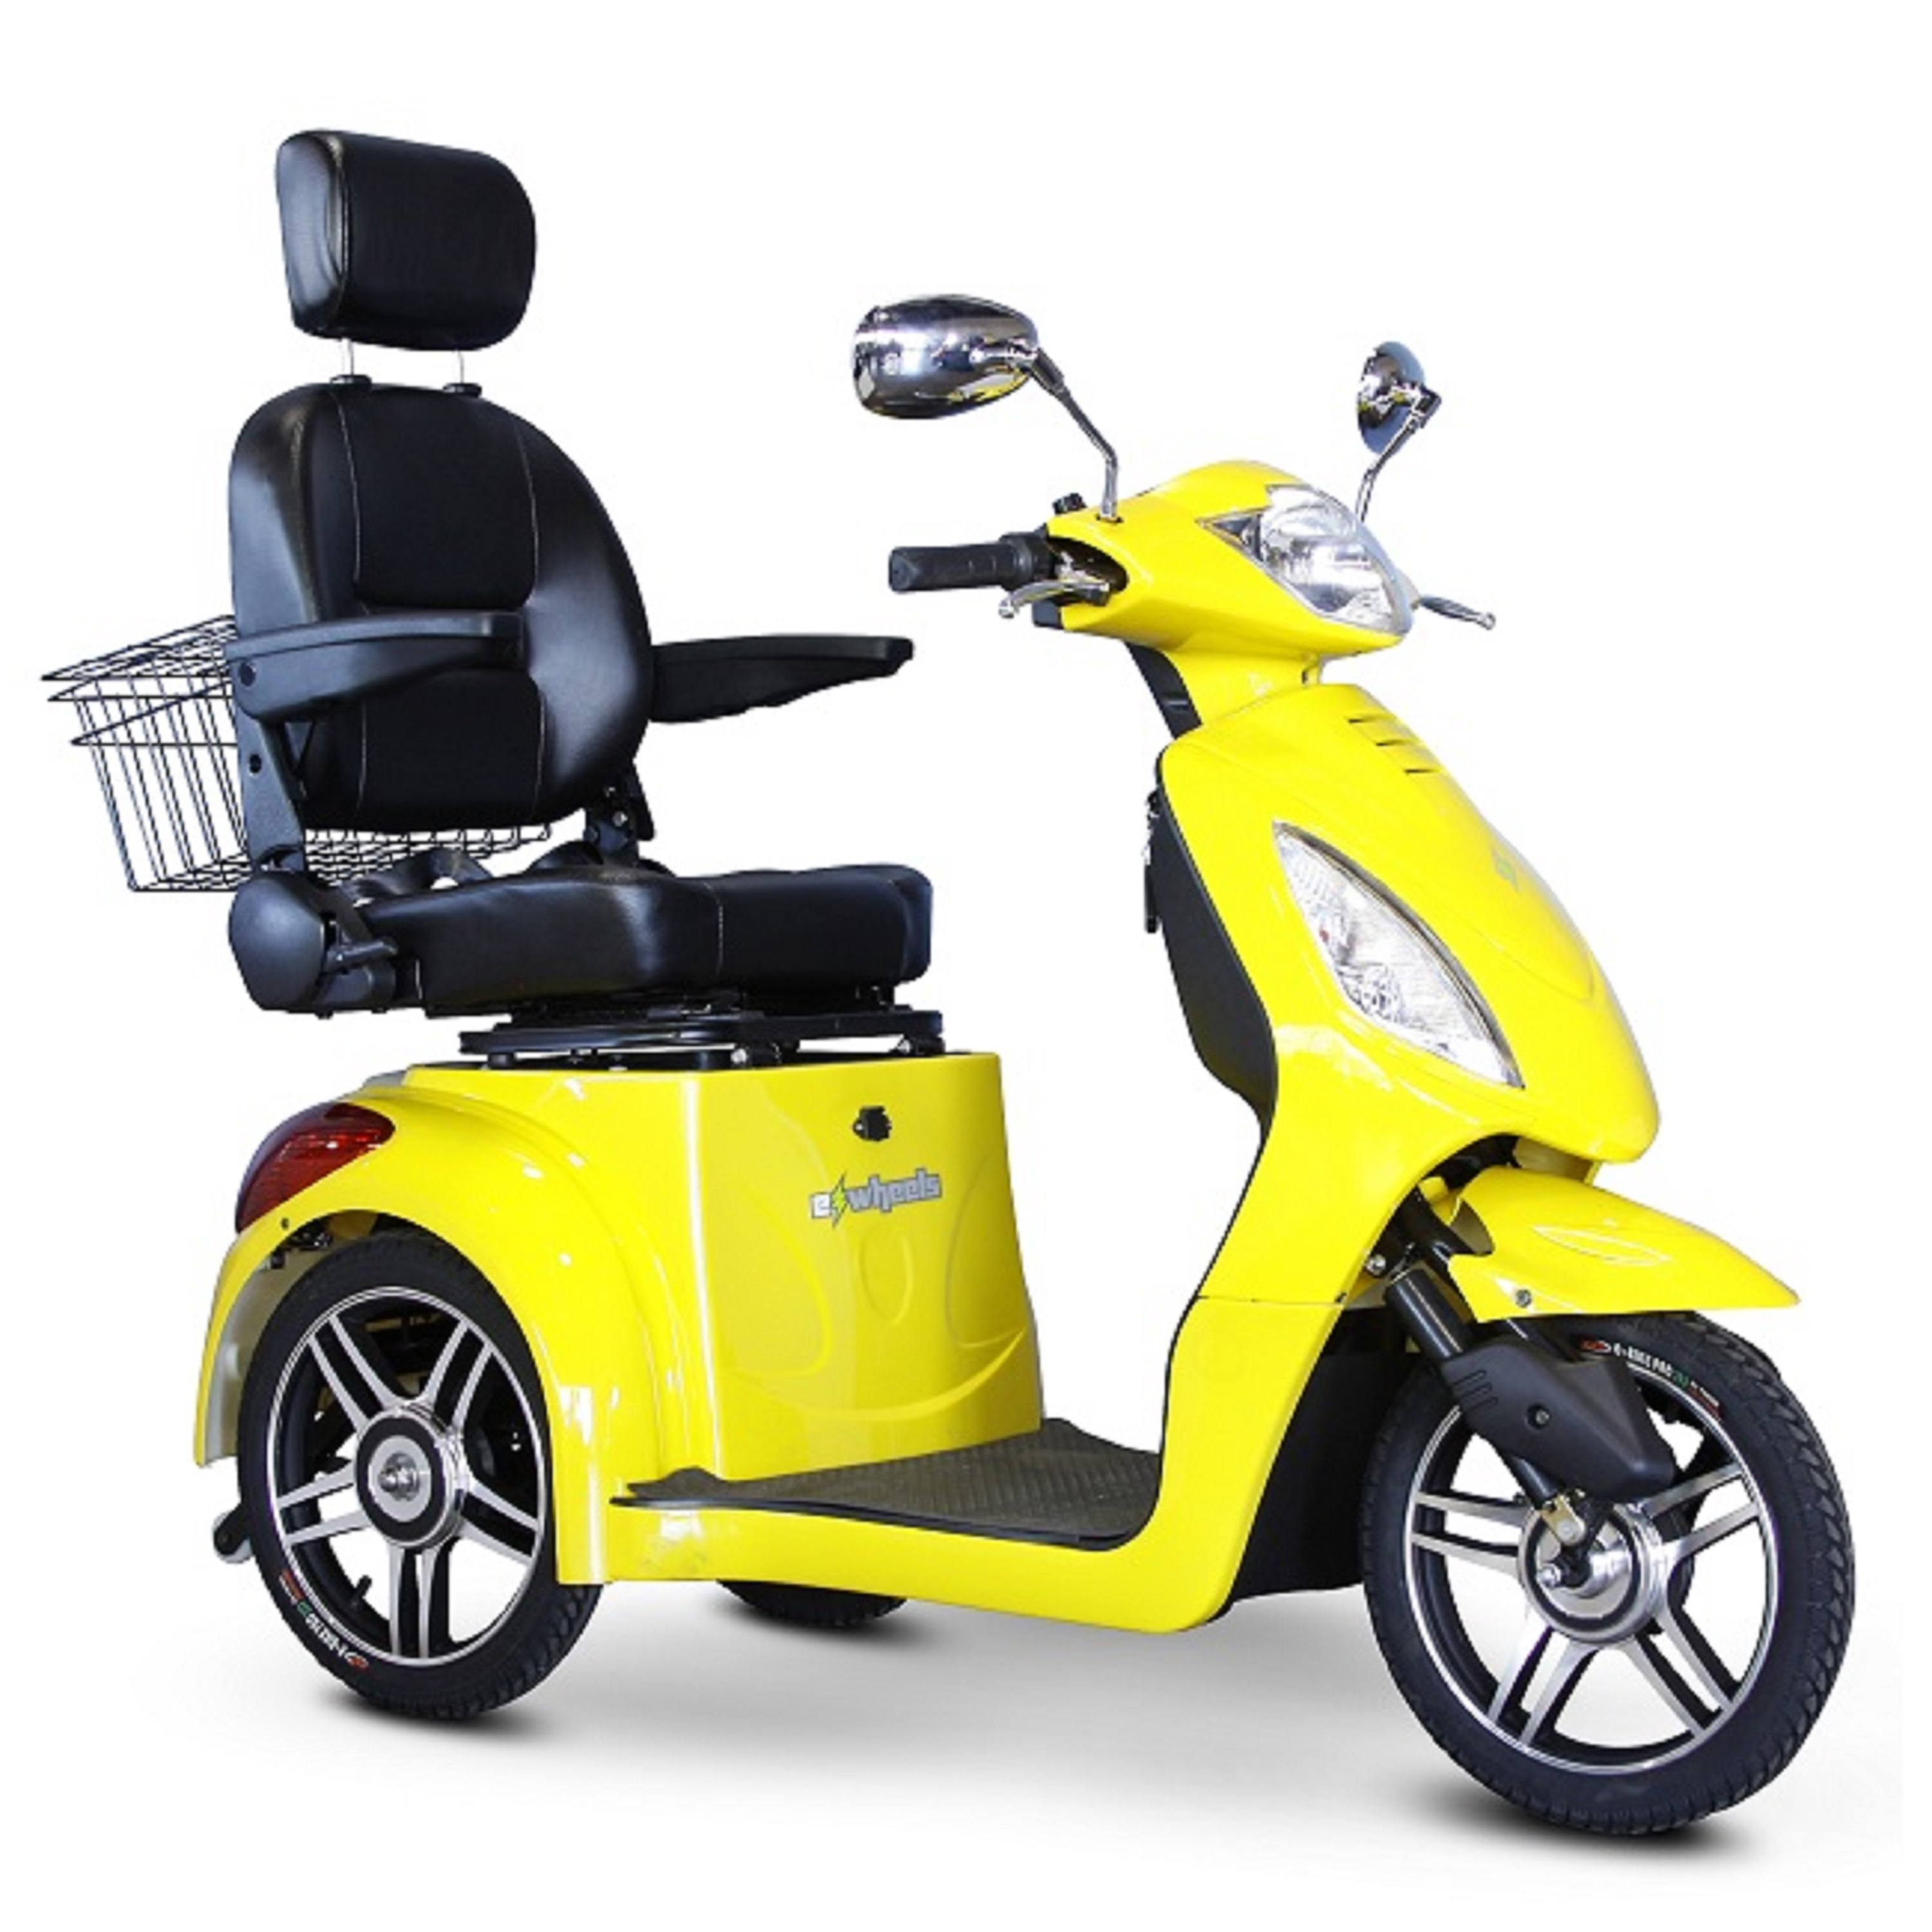 E-Wheels - POWER PACKAGE ($500 VALUE) - EW-36 Slowpoke Scooter with Electromagnetic Brakes - 3-Wheel - Yellow